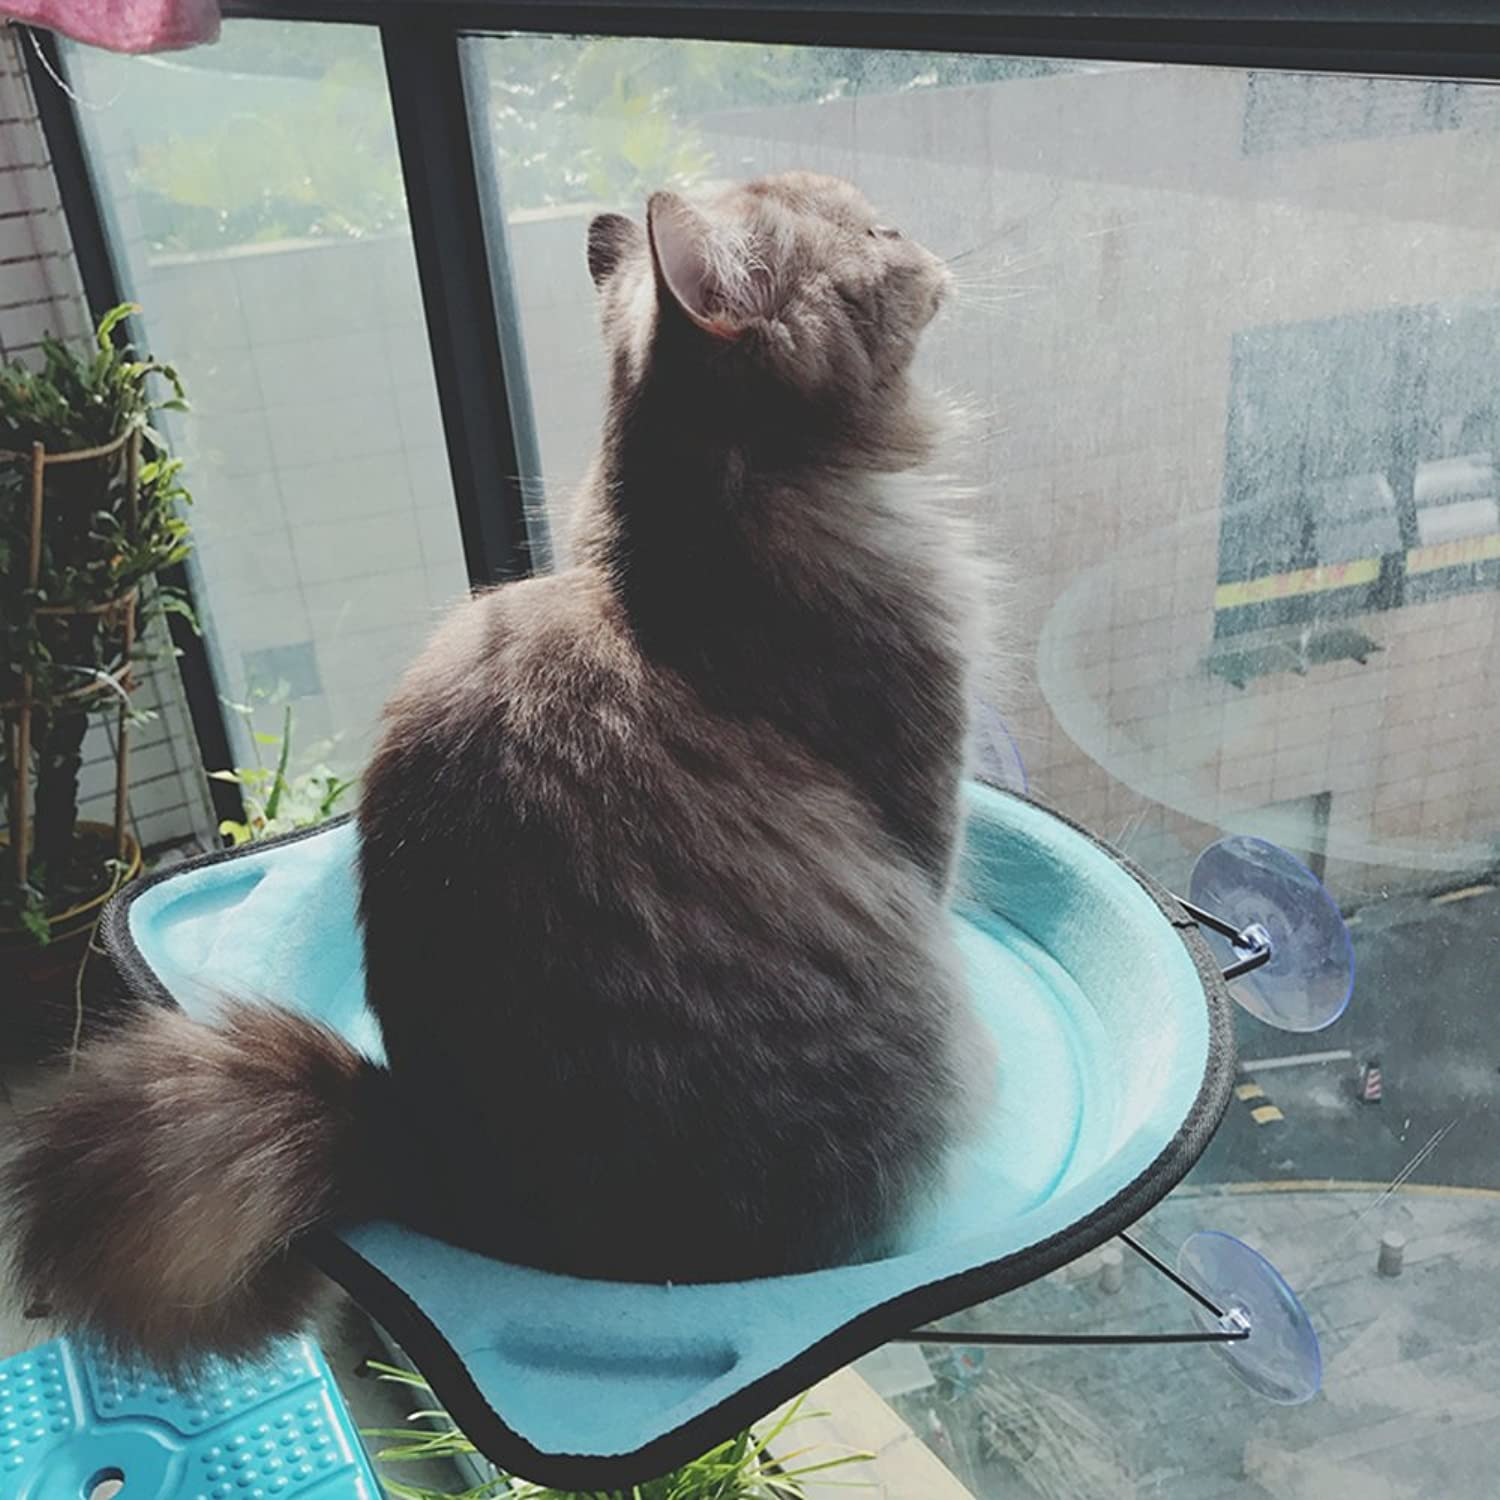 Cat Window Perch, DOTPET Metal Cat Hammock Finestra montata fino a 26lbs Finestra Mounted Cat Bed *Cat Sunny Seat 4 Suction Cup Mini Kitty Climbing Tower Godere Comfortable Sunbag for Winter (Blue)